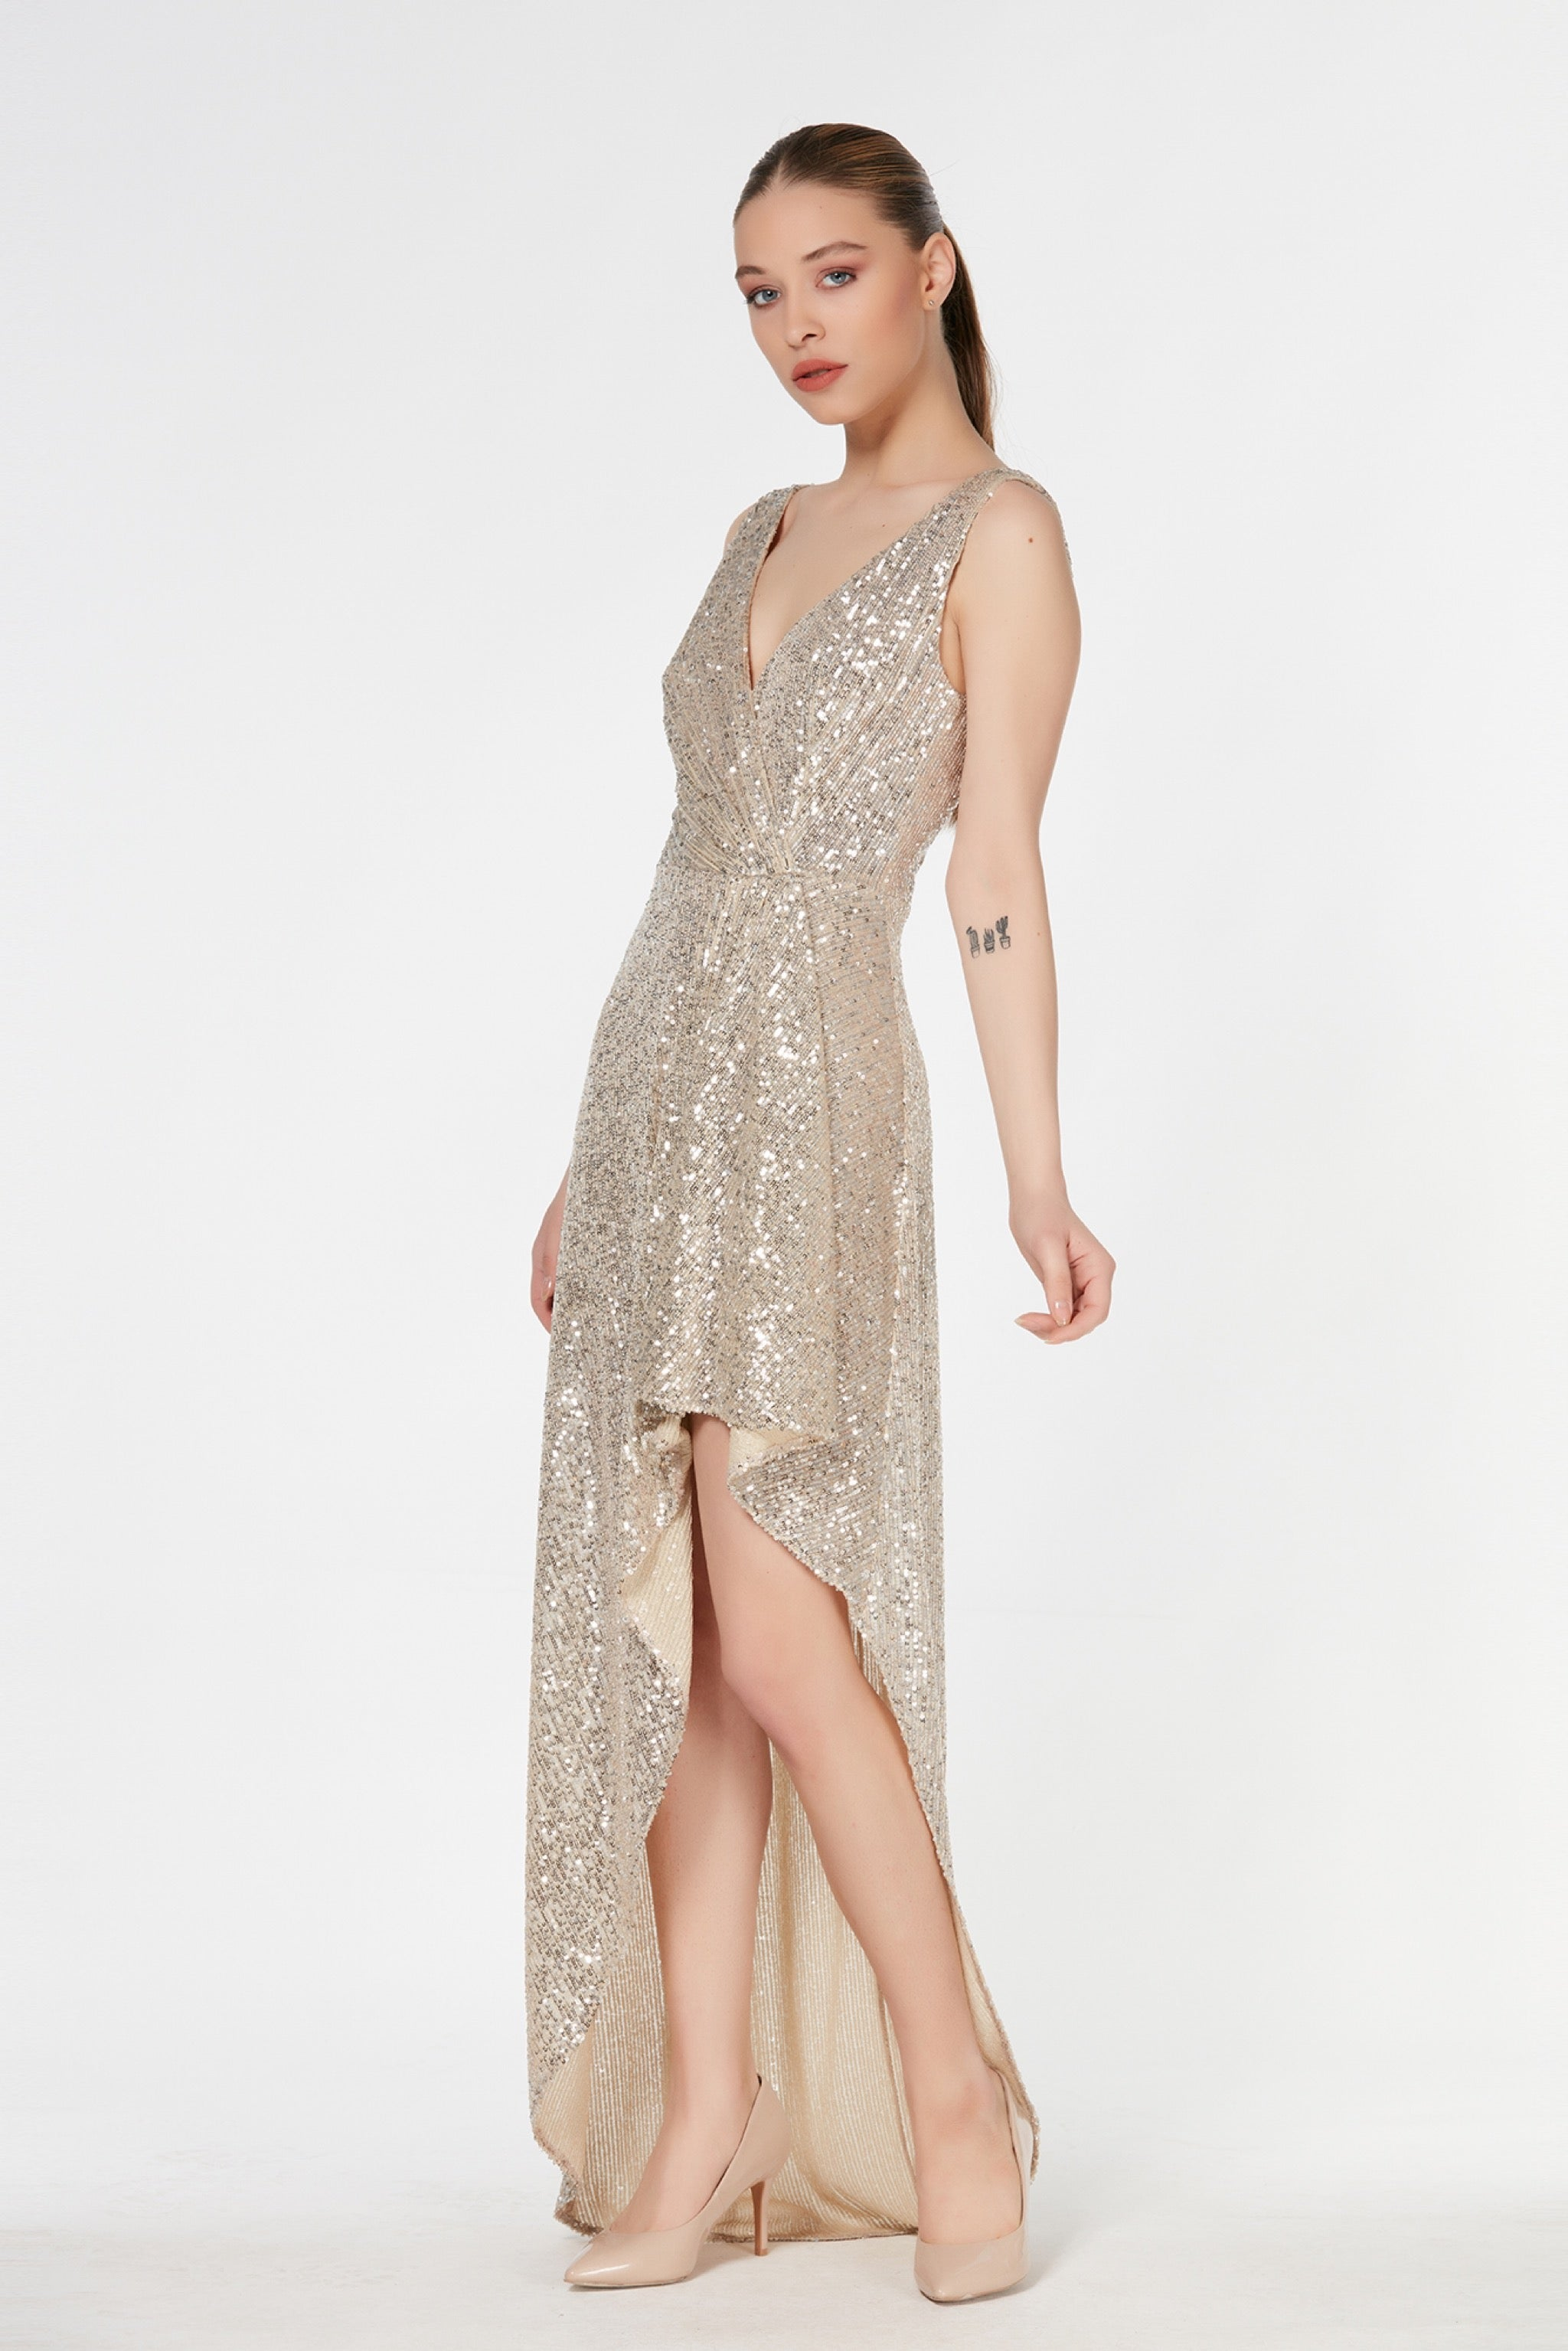 V neck sleeveless sequin maxi dress - 54437